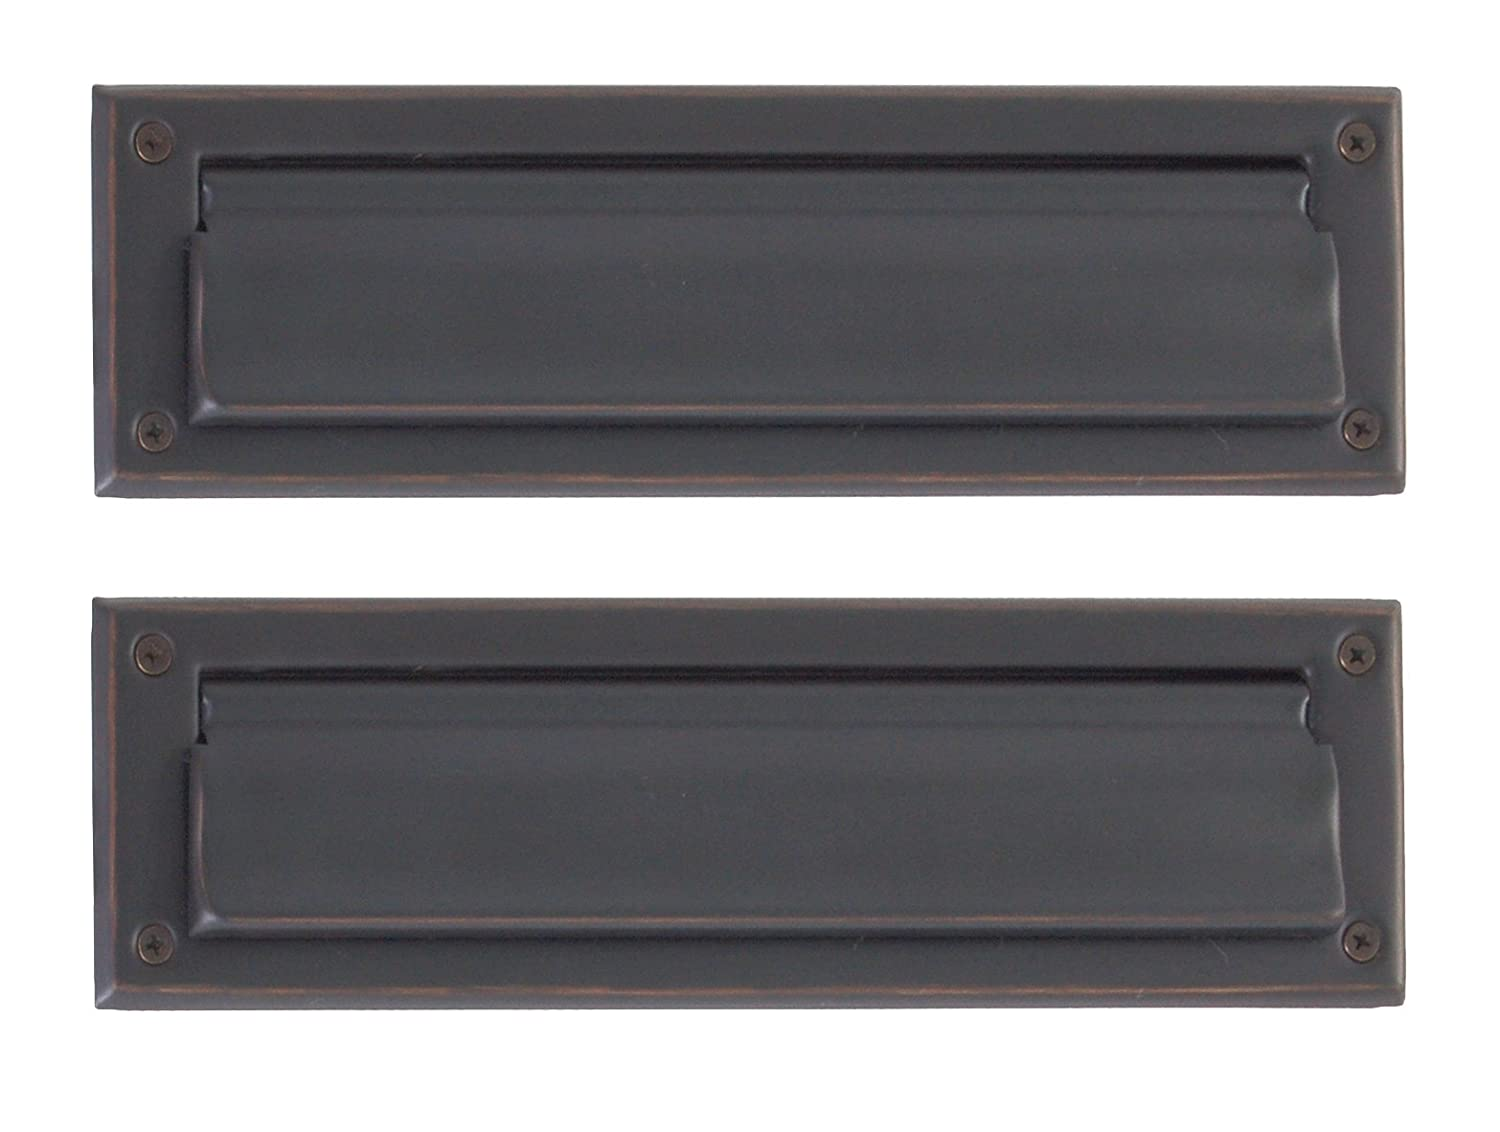 Brass Accents 0Jkco A07-M0070-609 Mail Slot